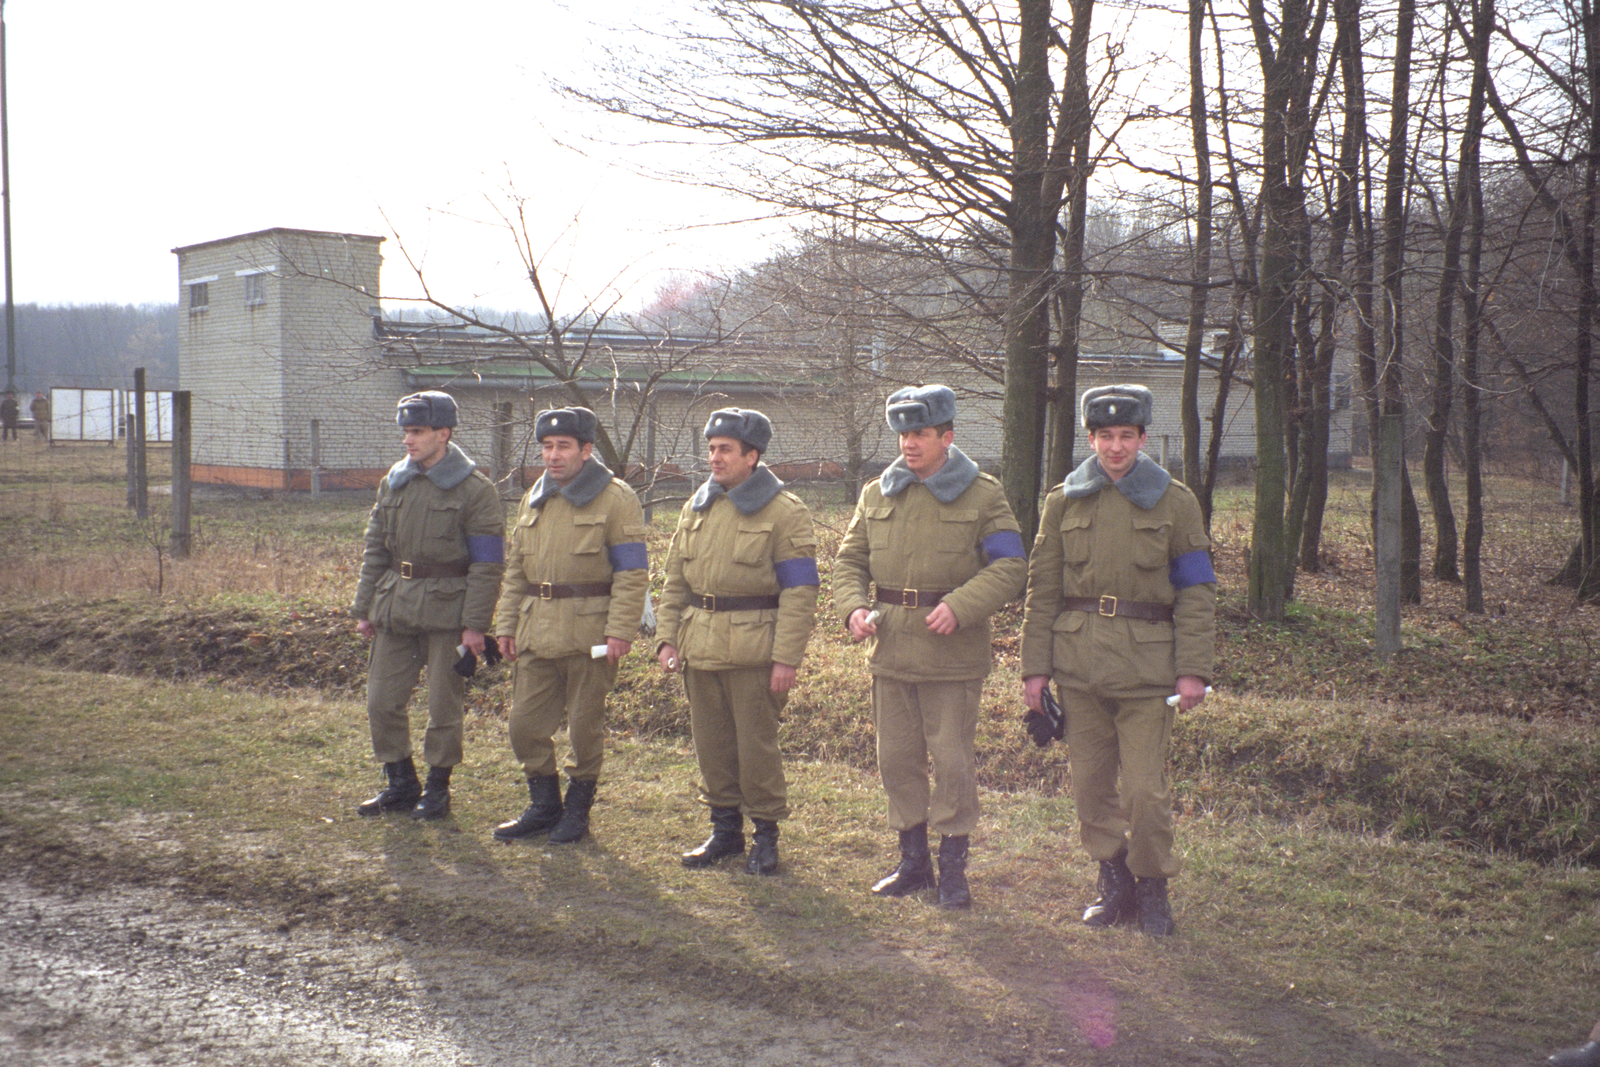 Ukraine - WMD Dismantlement - April 1995 - Inspection team visit to various ruins of former Soviet Union (FSU) Weapons of Mass Destruction (WMD) production facilities